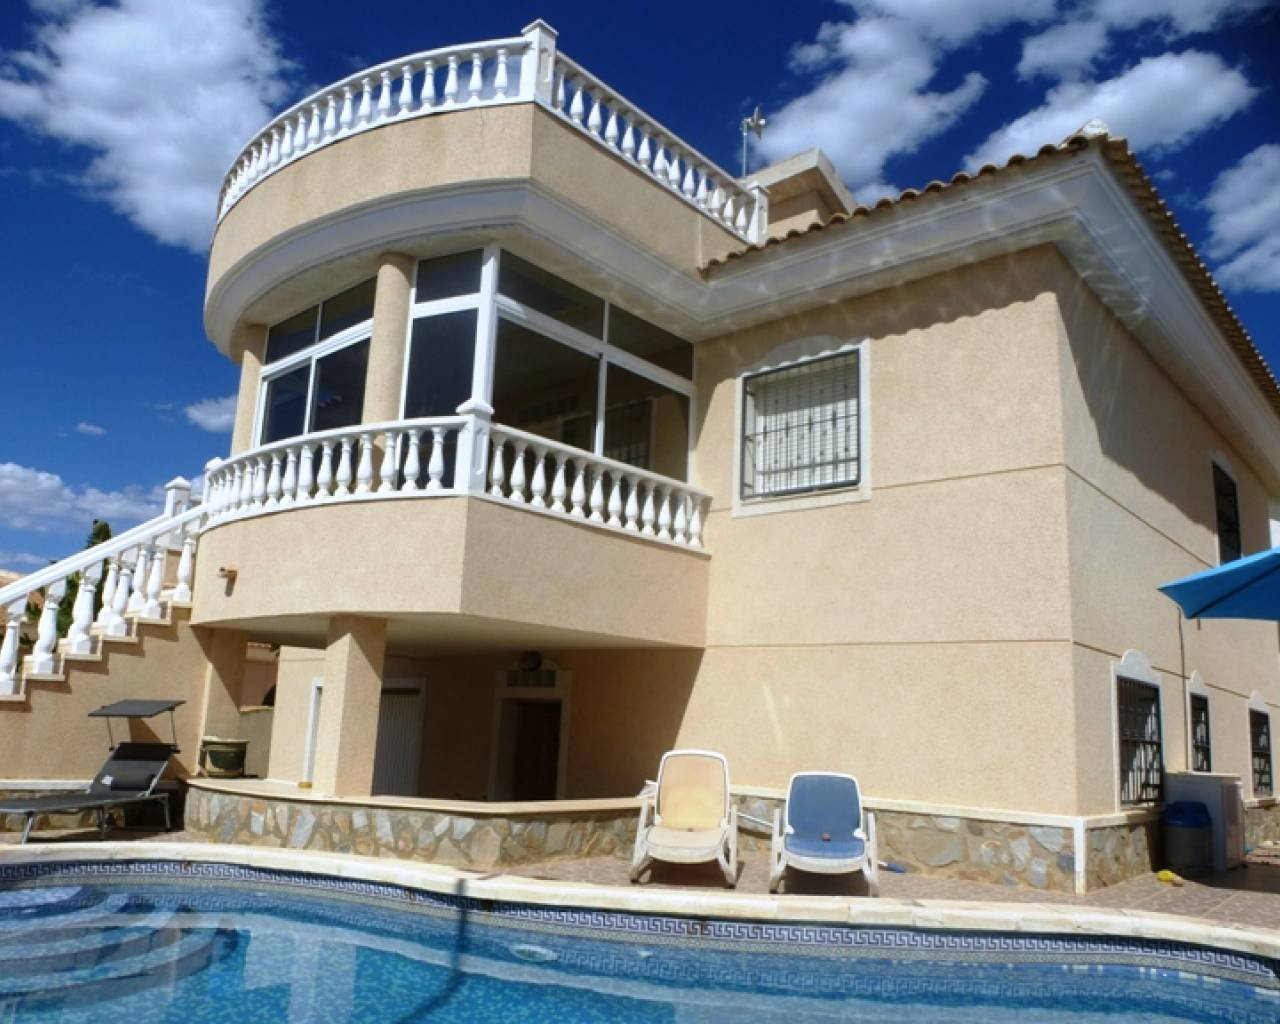 Detached Villa - Venta - Benijofar - Benijofar - Village